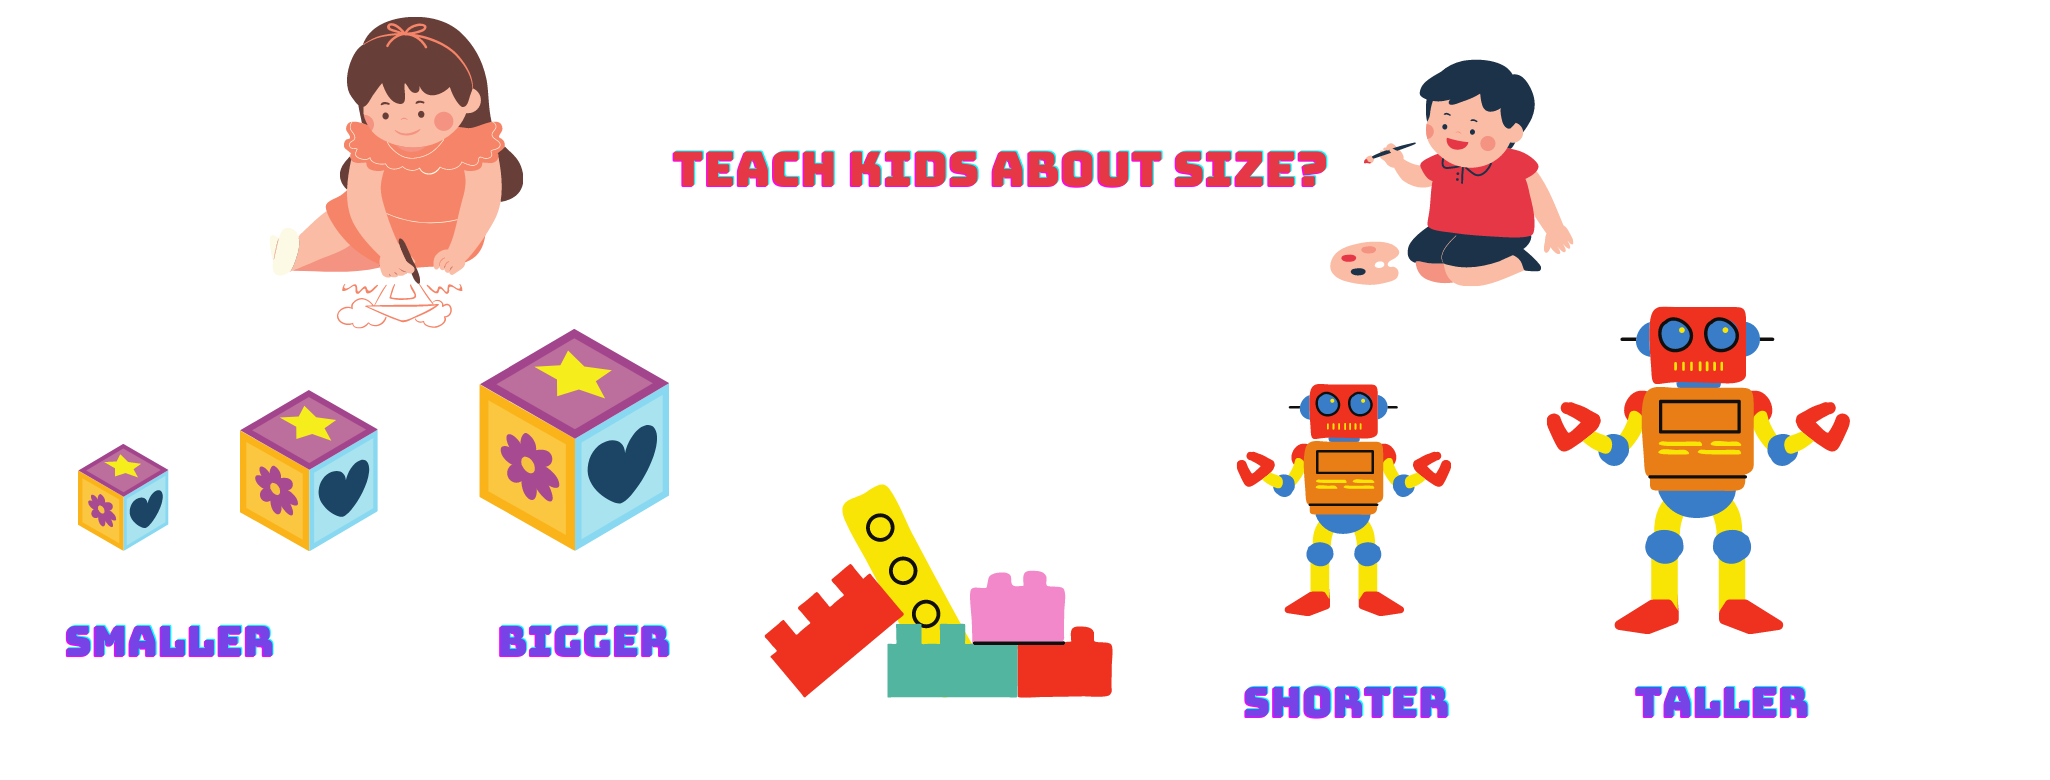 How to teach kids about size which is bigger smaller taller shorter